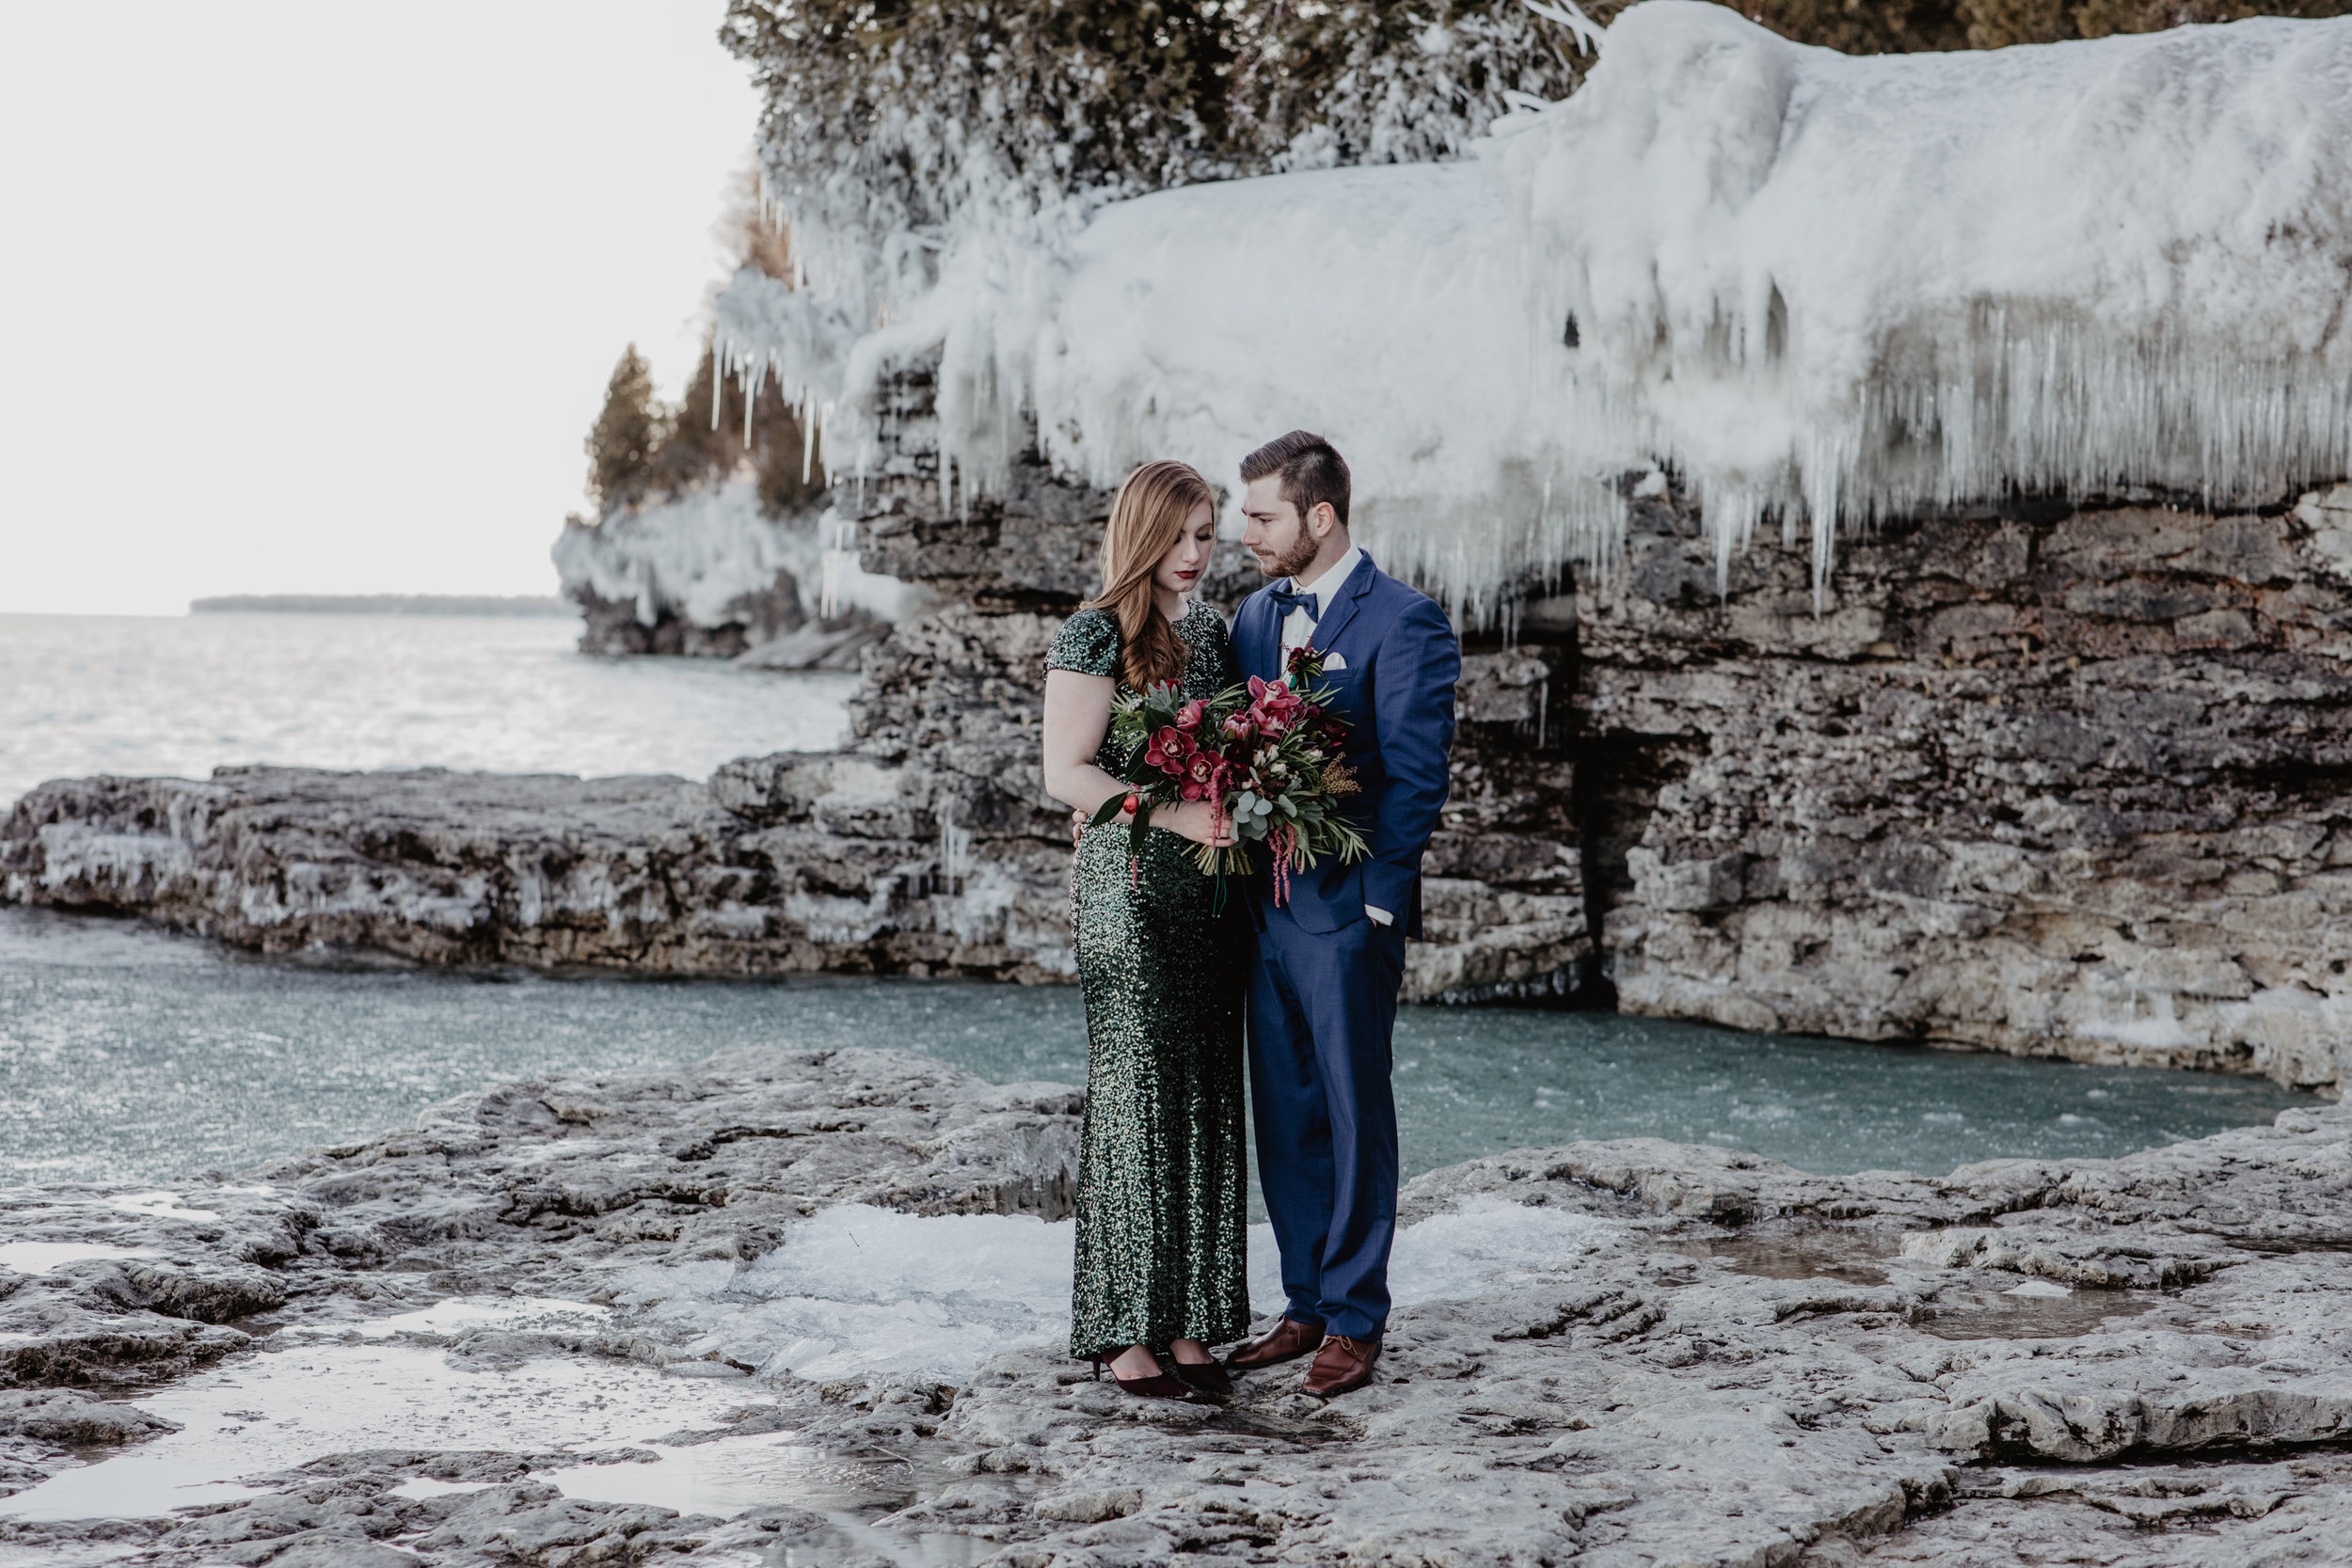 A Romantic Jewel Tone Inspired Shoot - Green Sequin Dress - Navy Suits by Zegers Clotheirs, Florals by Ebb & Flow, Makeup & Hair by Jillian Dawson, Cave Point - Winter Elopement